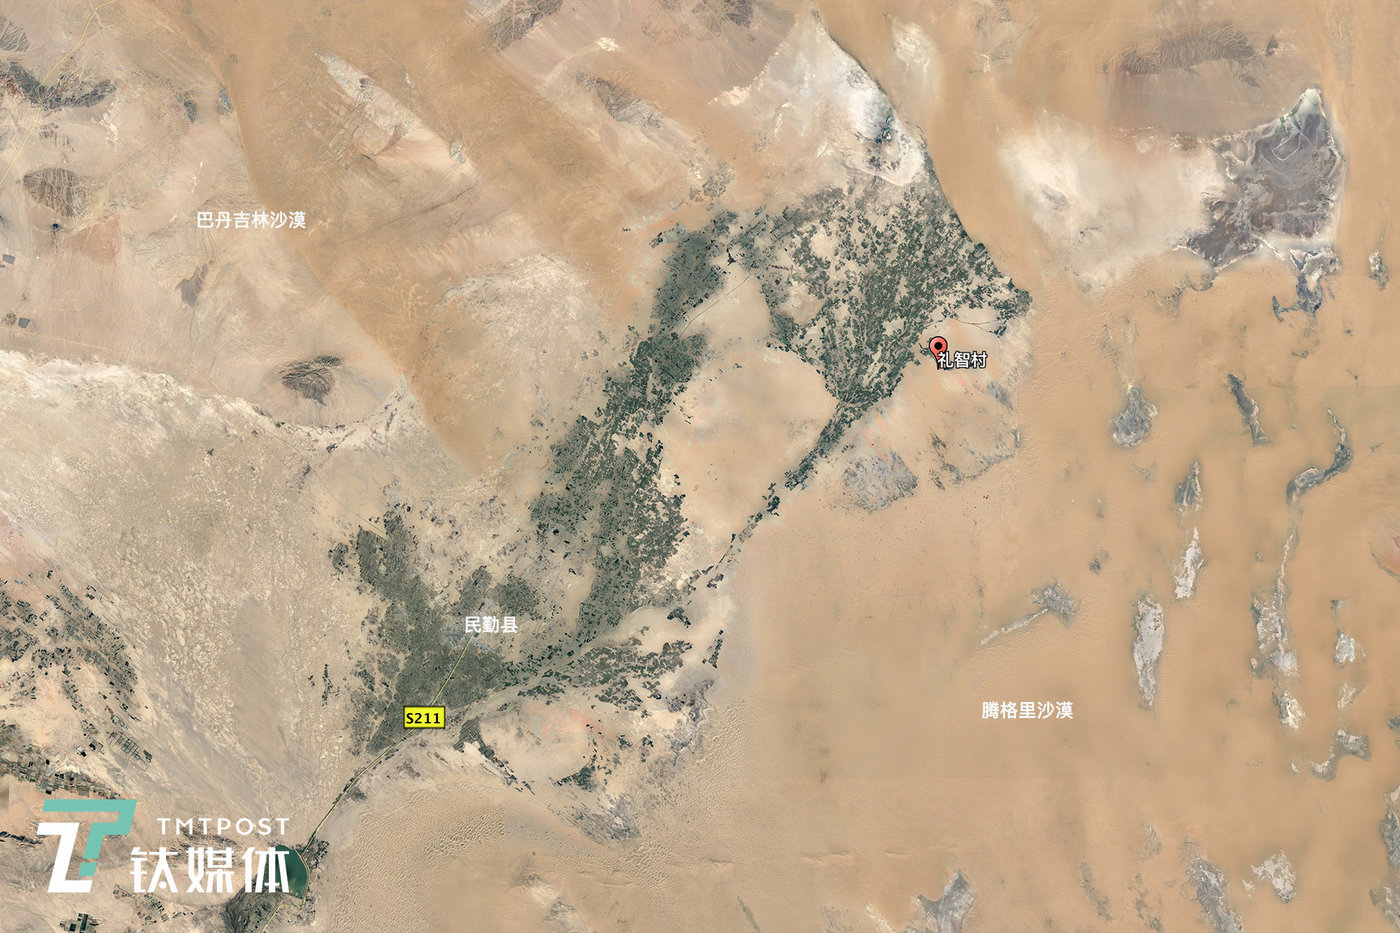 Minqin Oasis, with an area of approximately 1,600 square km (image: Google Earth/July 12, 2017), is 140 km long and 40 km wide at its broadest section, with only a stretch of road at its narrowest point. The oasis stands as the final frontier against the Badain Jaran and Tengger Deserts that encompass it.